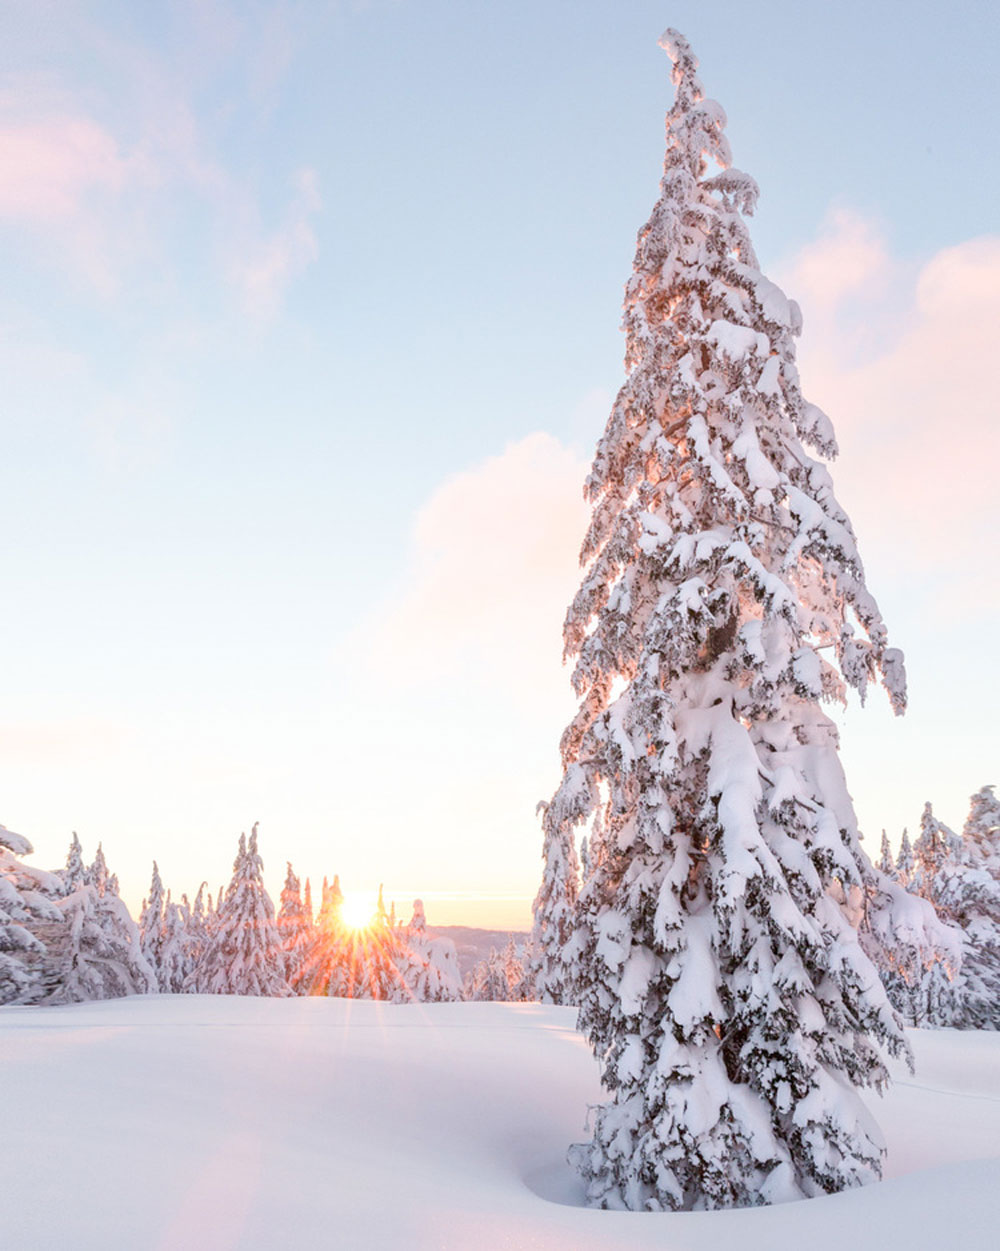 06-Christian-Schaffer-Crater-Lake-Snow-Tree-Sunset